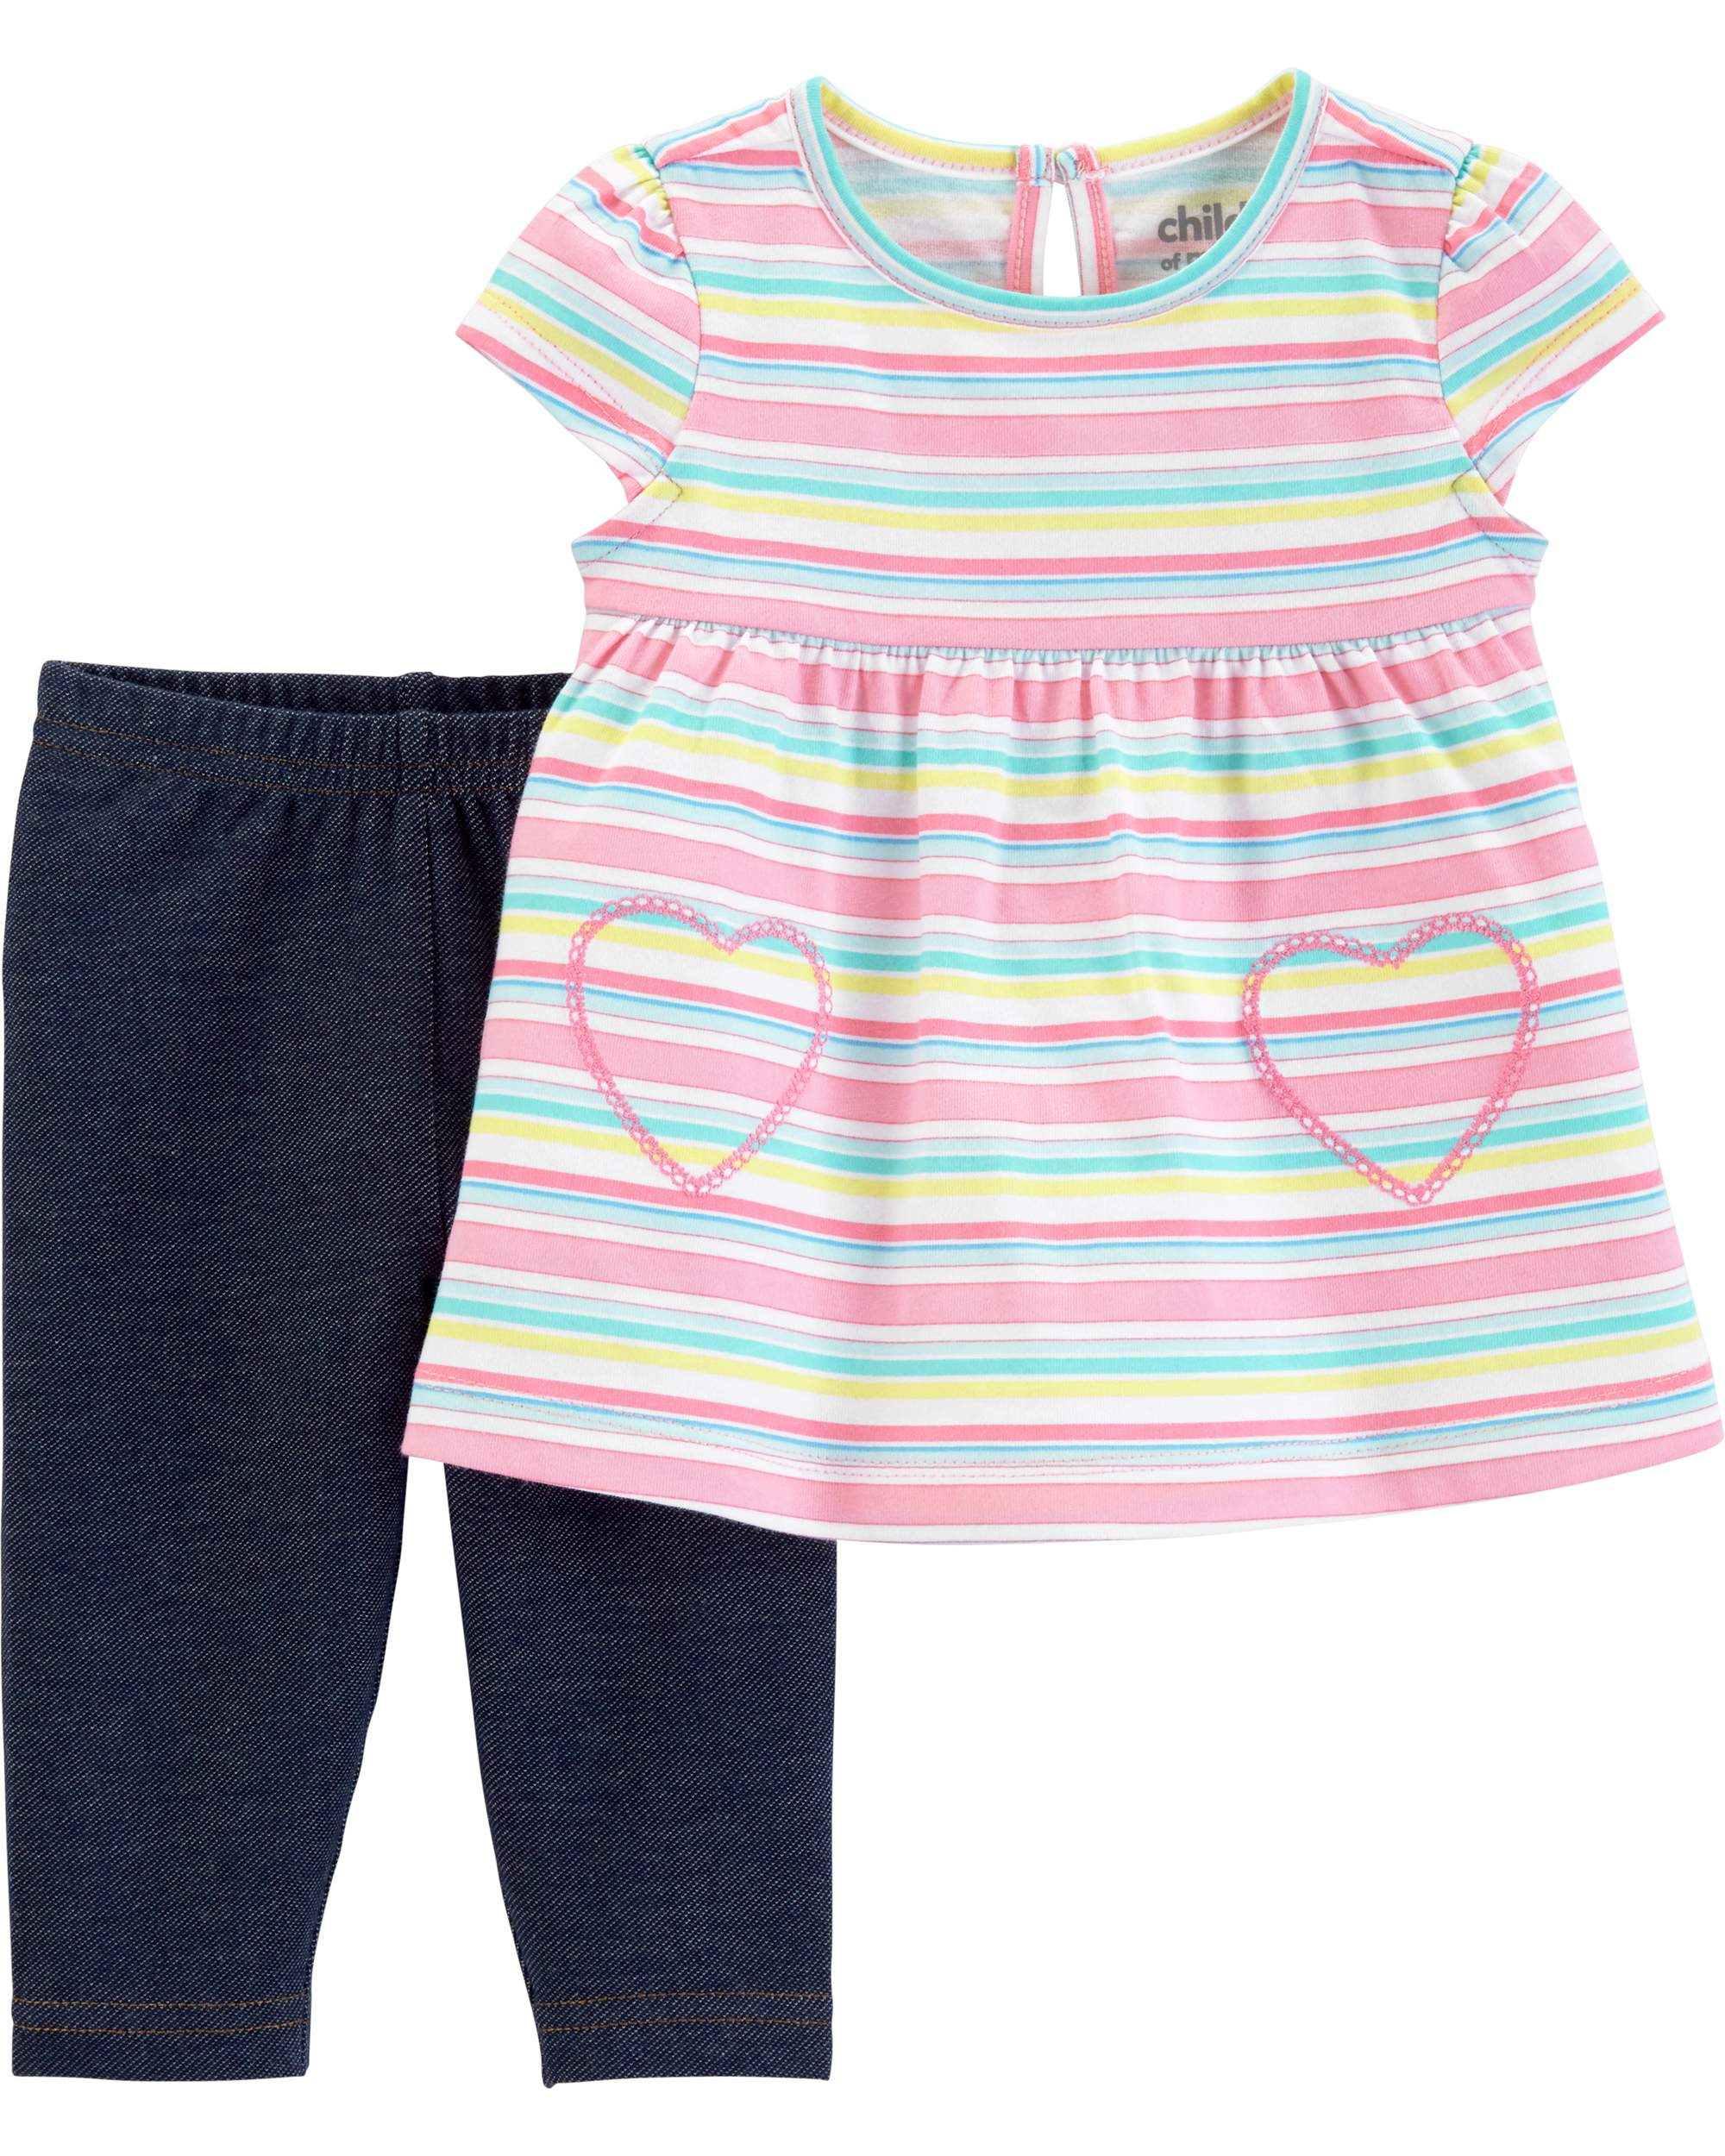 Top and Pants Outfit, 2 Piece Set (Baby Girls)